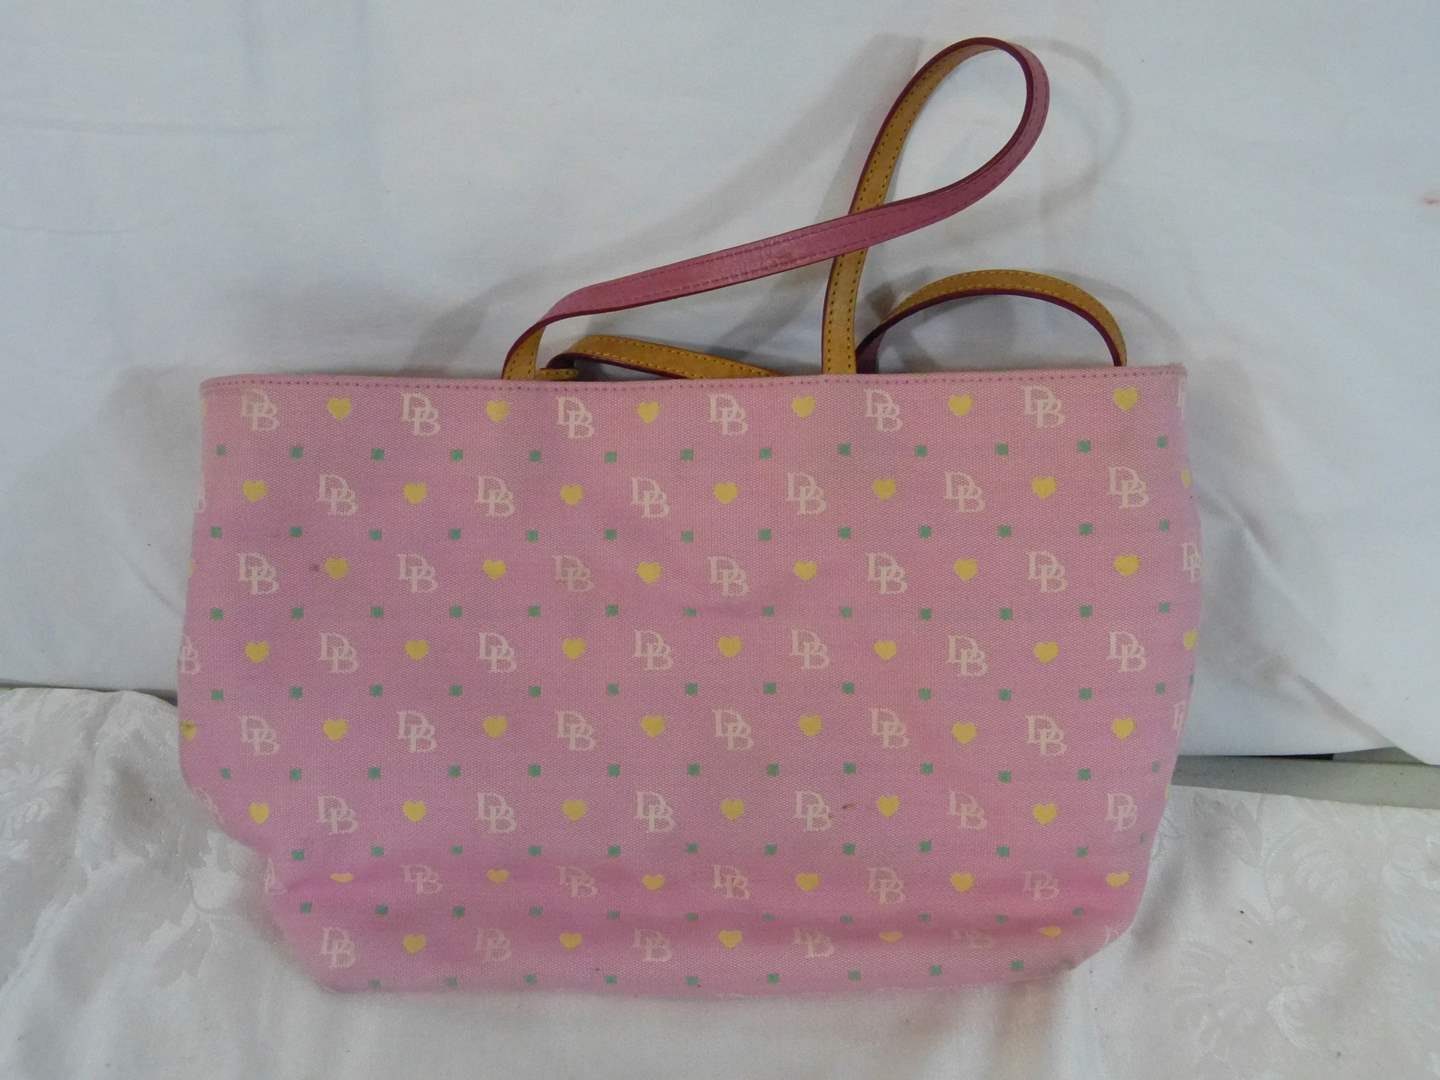 Lot # 280 Authentic Dooney & Bourke (lightly used) Tote (main image)